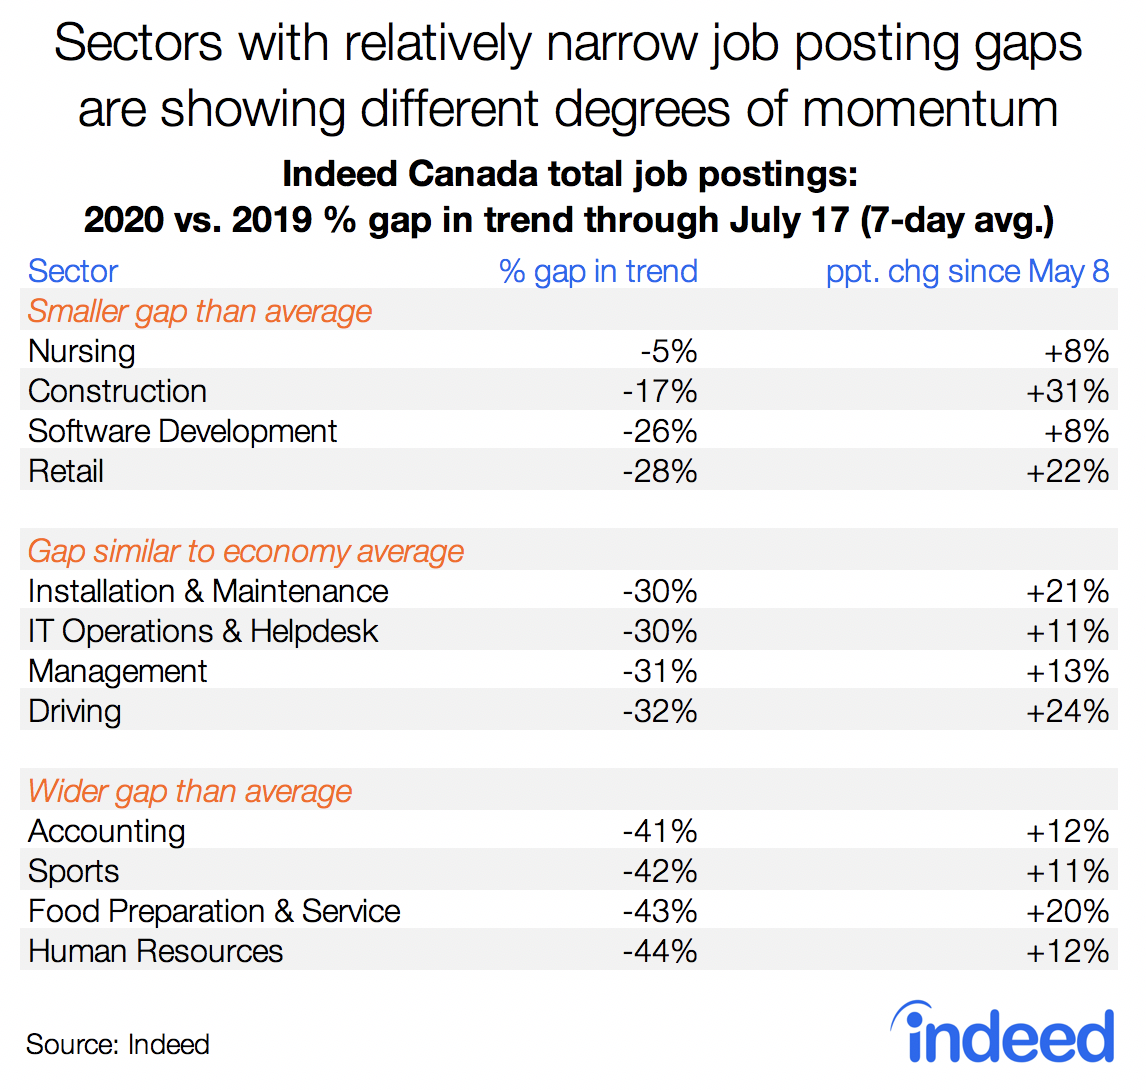 Table shows sectors with relatively narrow job postings gaps are showing different degrees of momentum.